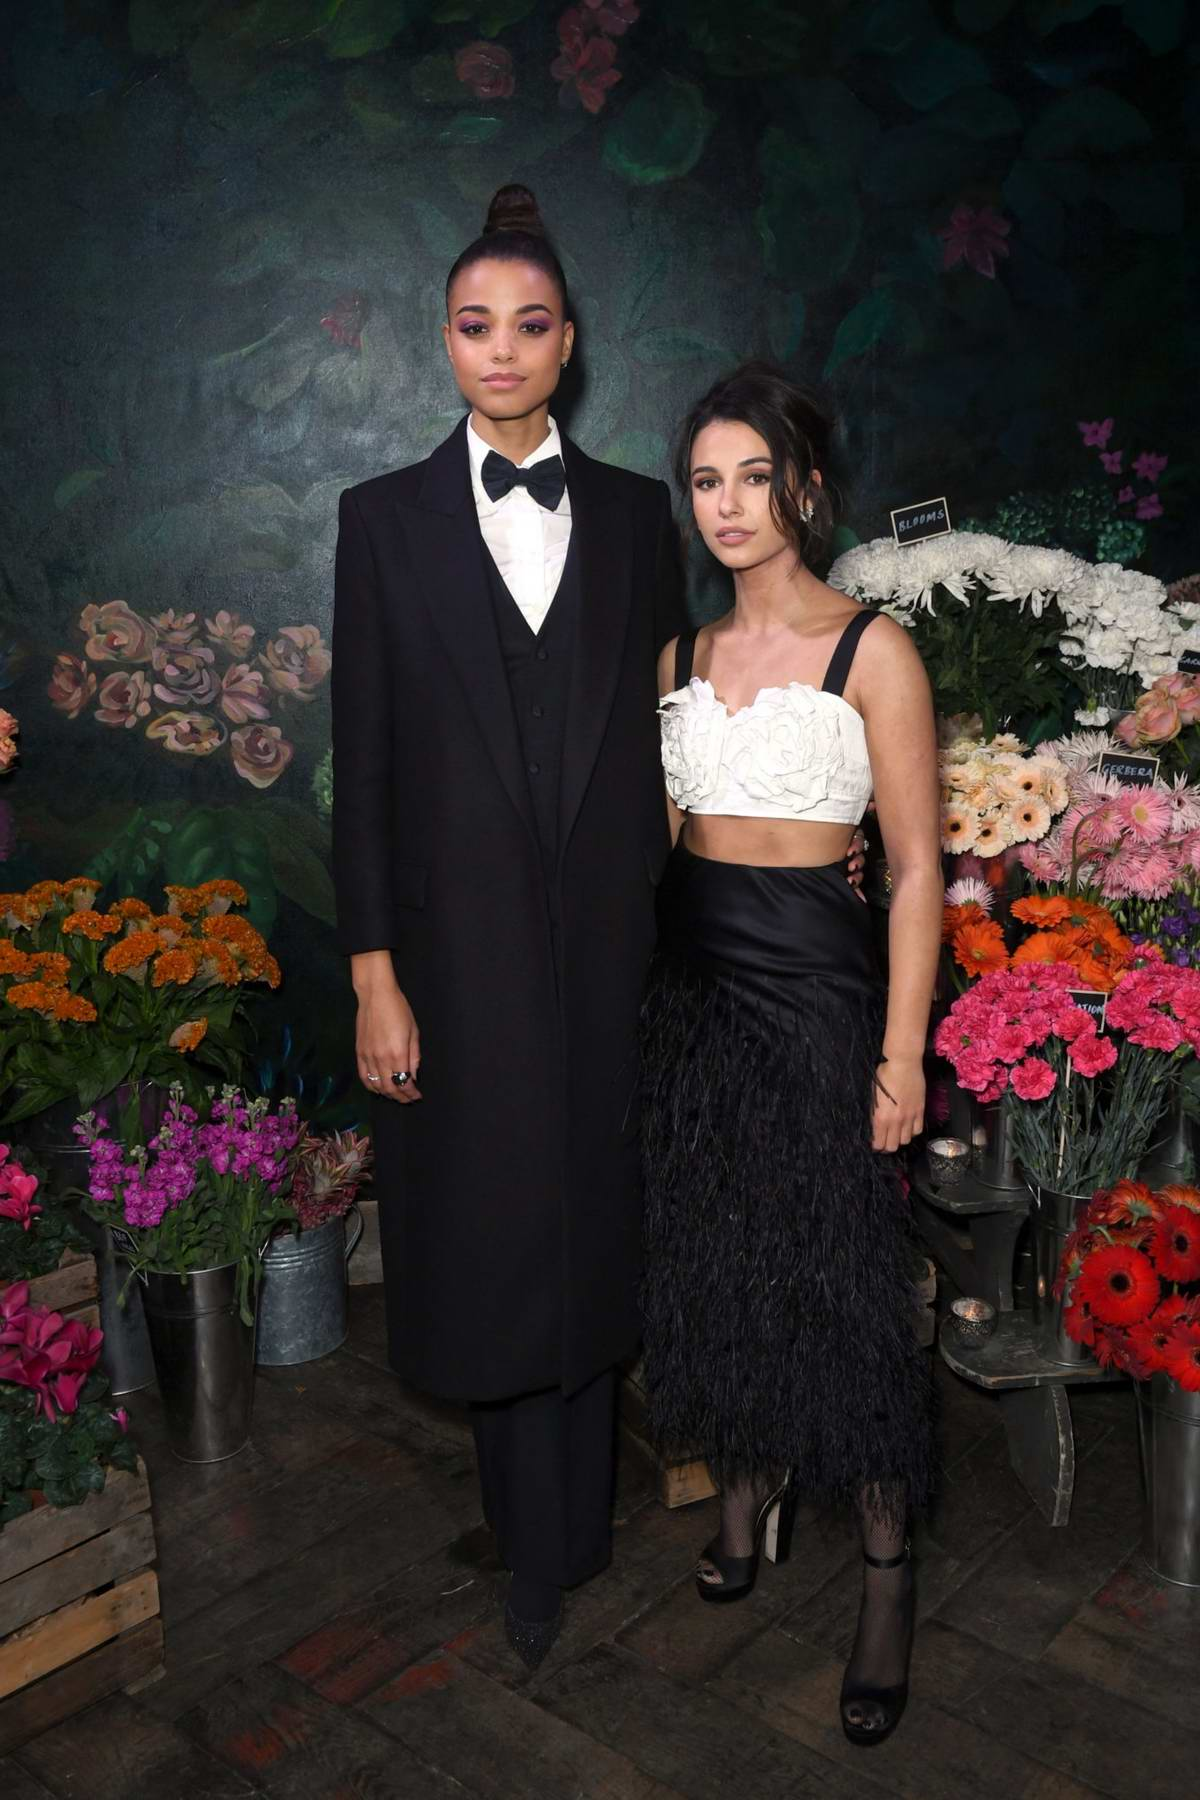 Naomi Scott and Ella Balinska attend The Business of Fashion Presents VOICES 2019 Gala Dinner in London, UK